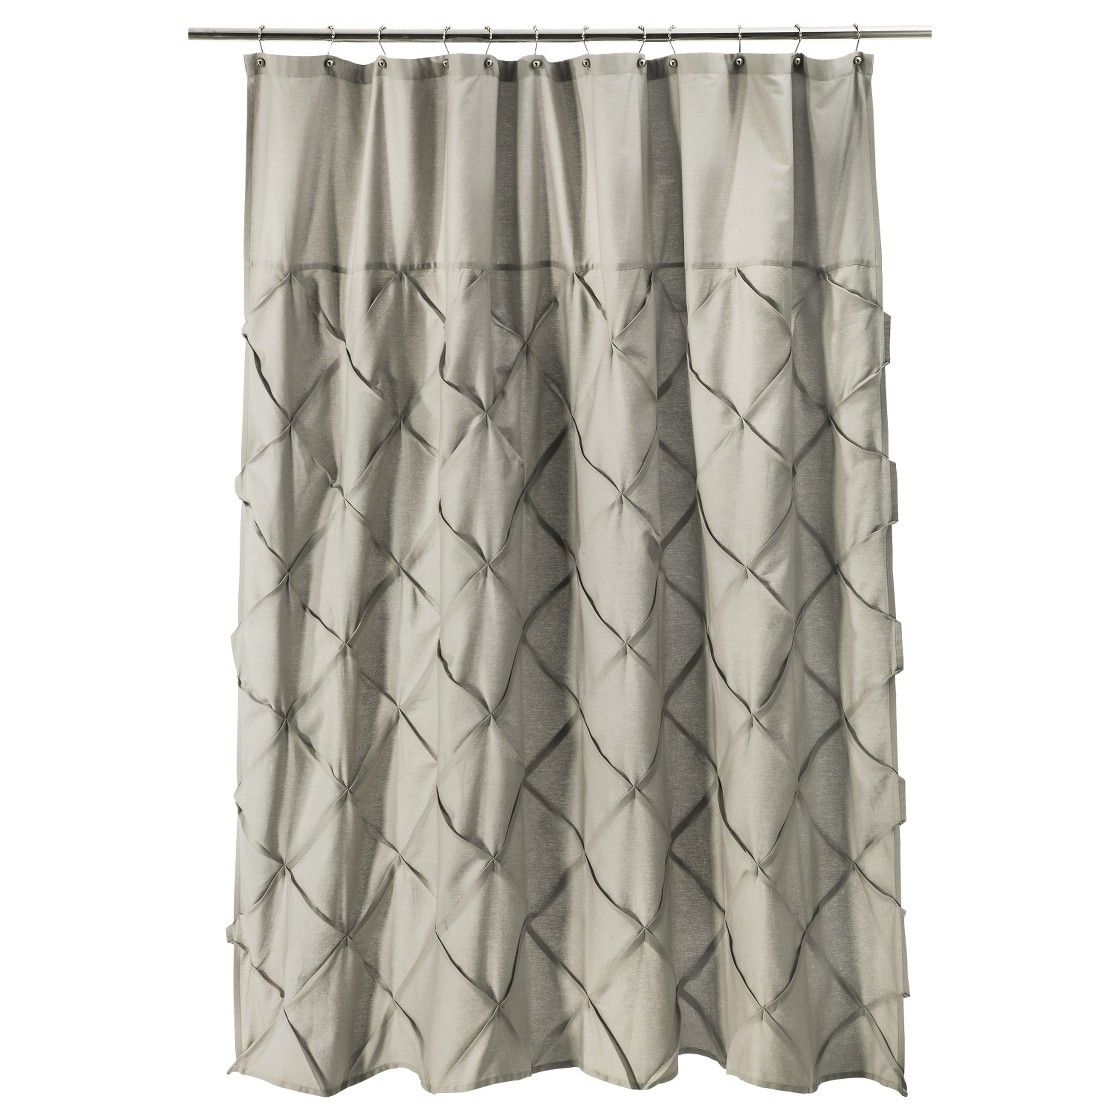 Target bathroom accessories shower curtains - More Than Sellers Offering You A Vibrant Collection Of Fashion Collectibles Home Decor And More Threshol Shower Curtain